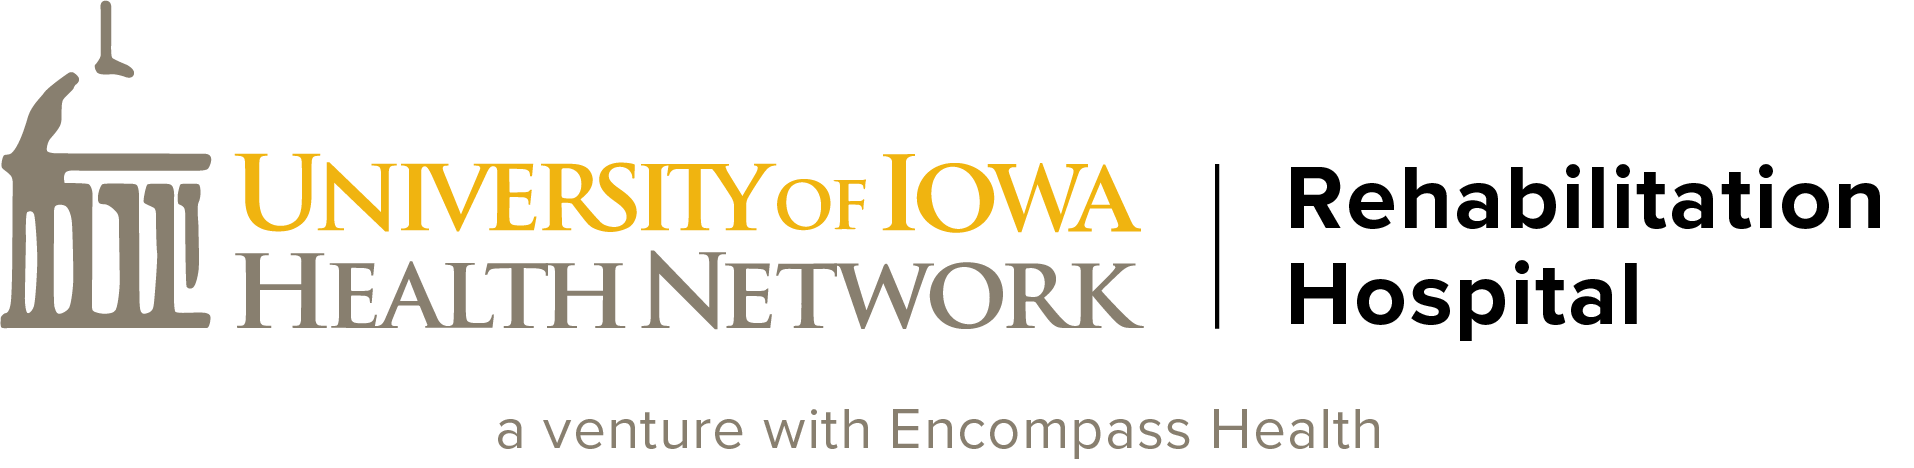 University of Iowa Health Network Logo